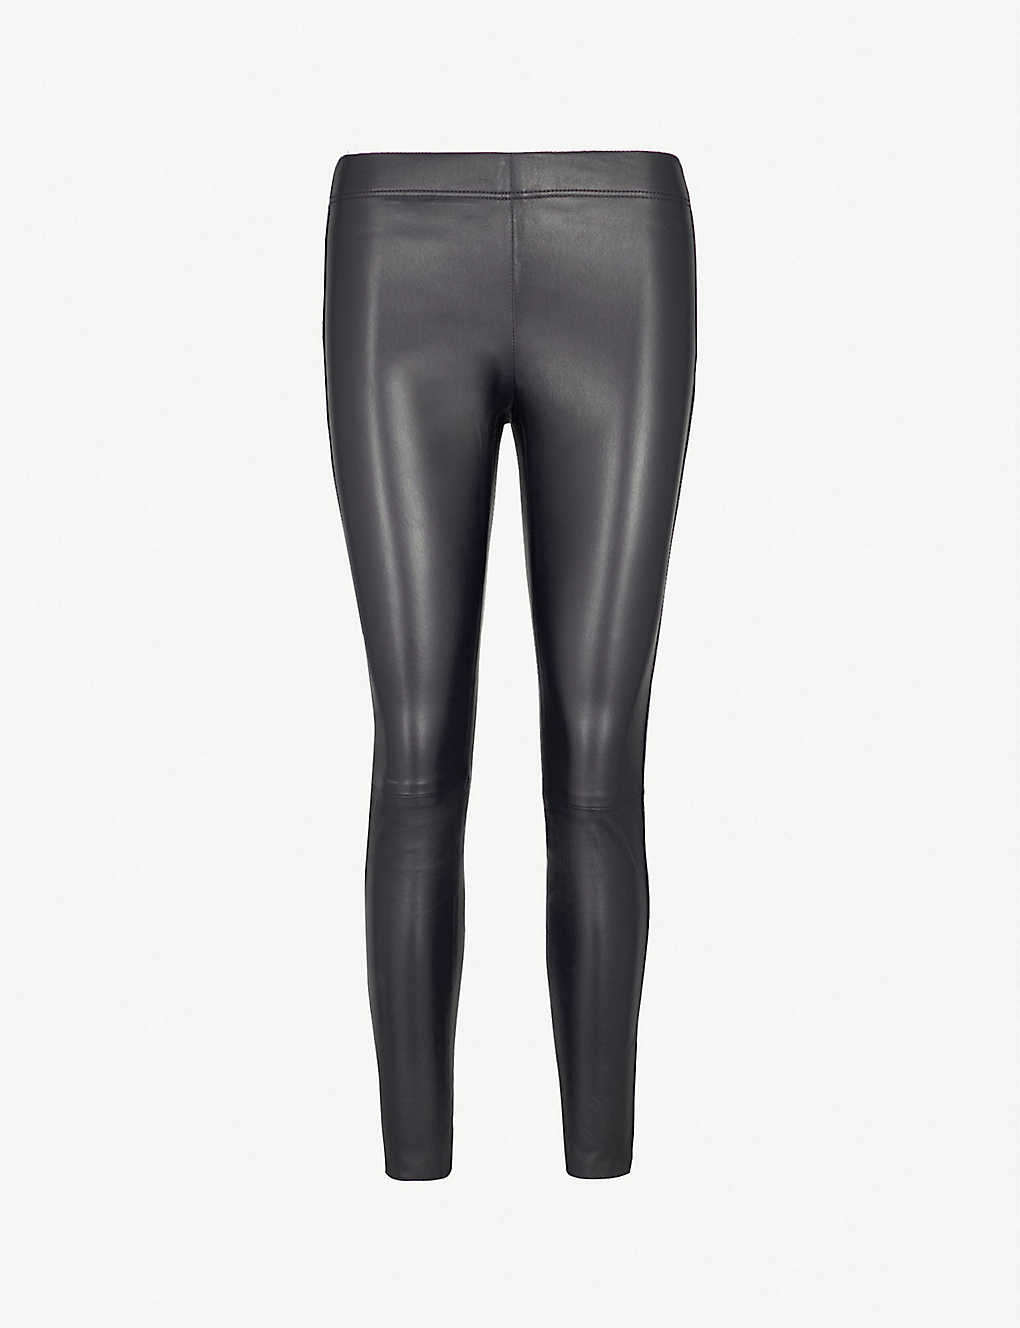 04d799a5c248e6 Panelled leather leggings zoom; Panelled leather leggings zoom ...